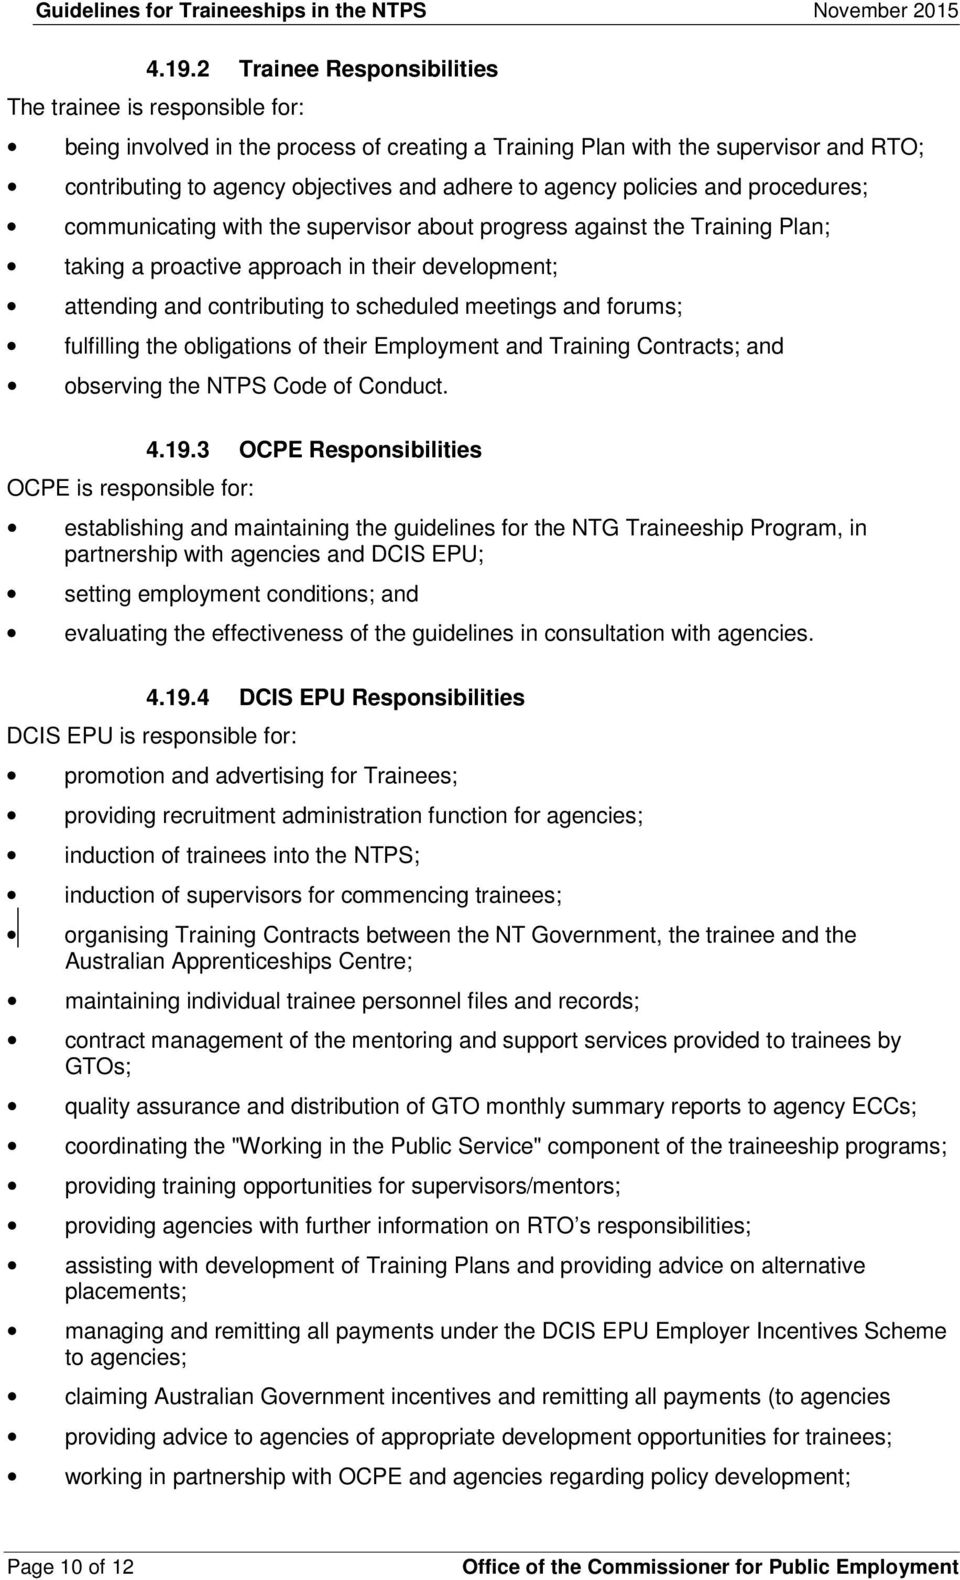 meetings and forums; fulfilling the obligations of their Employment and Training Contracts; and observing the NTPS Code of Conduct. OCPE is responsible for: 4.19.